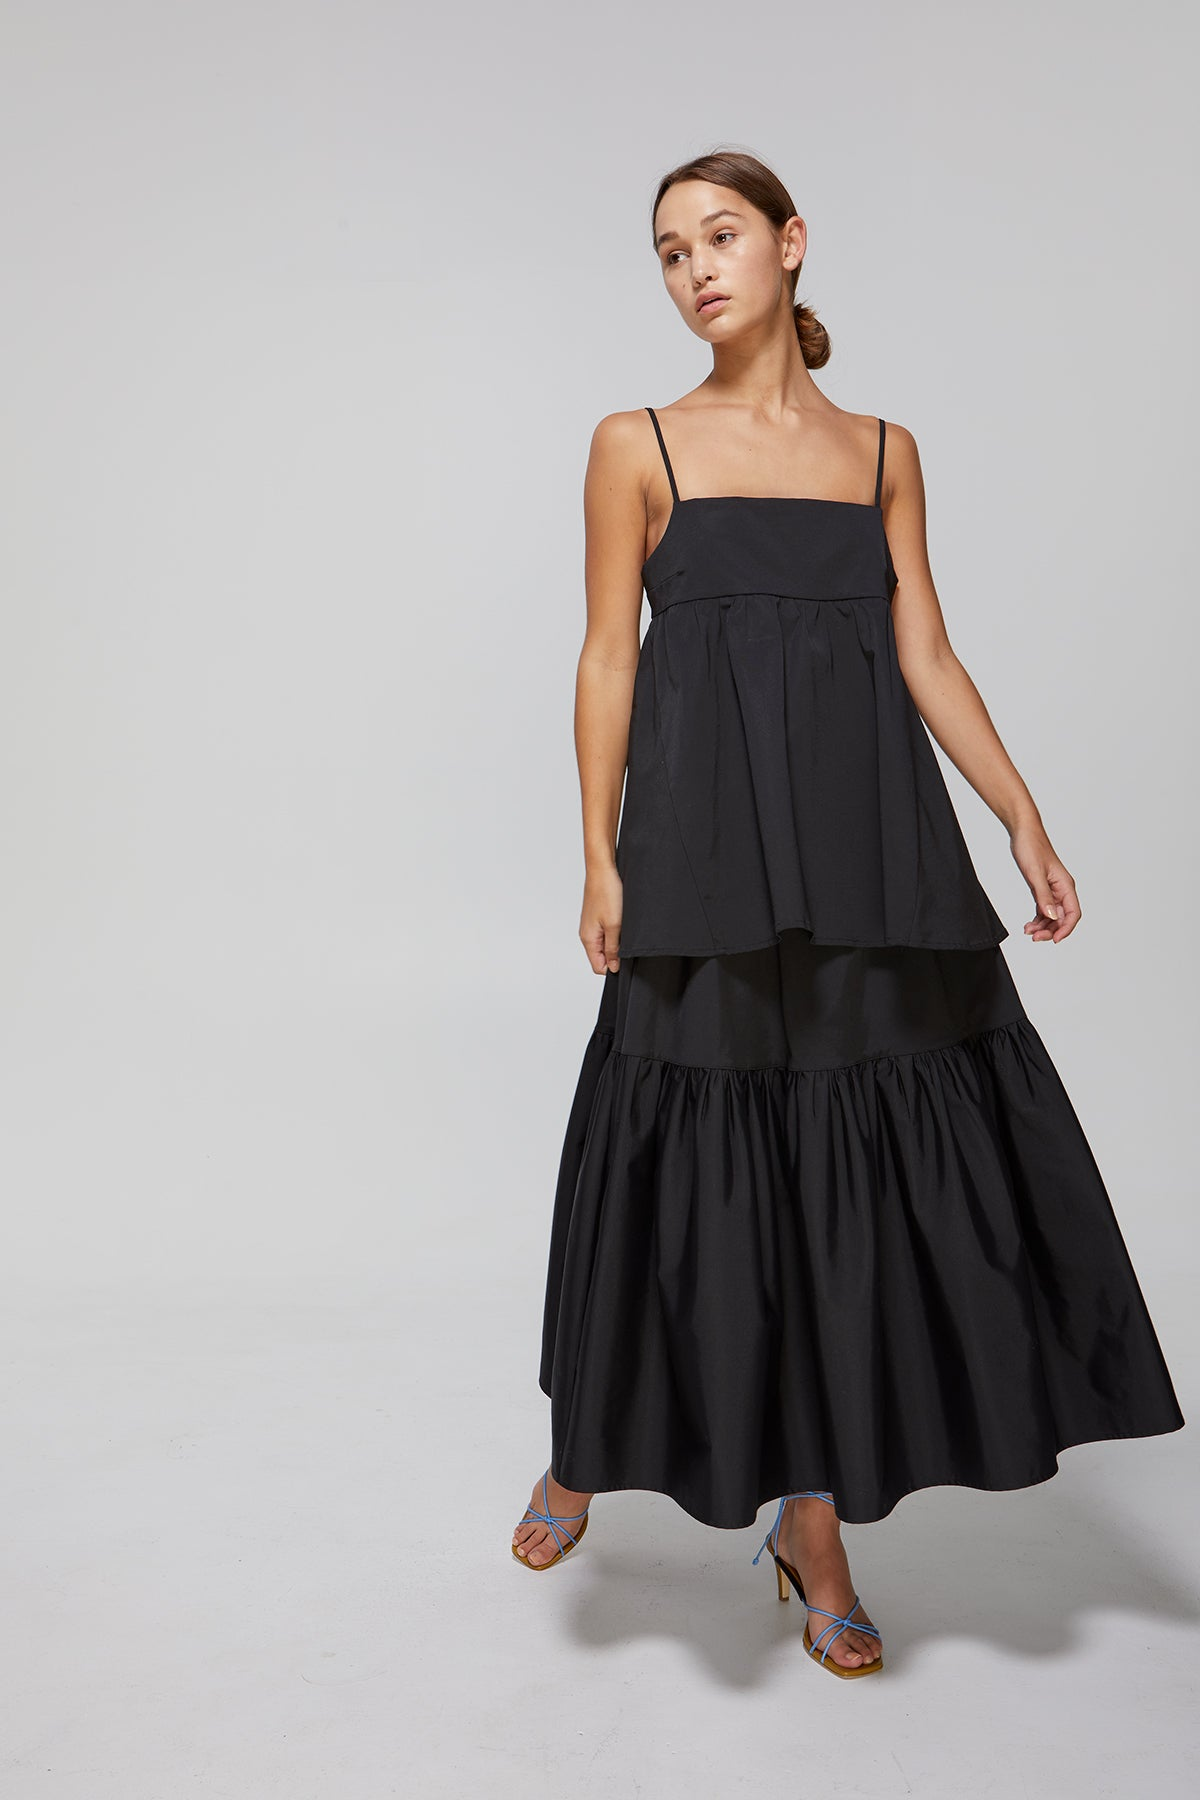 Ghini Skirt Gregory SS20 Collection NZ Sustainable Fashion Design